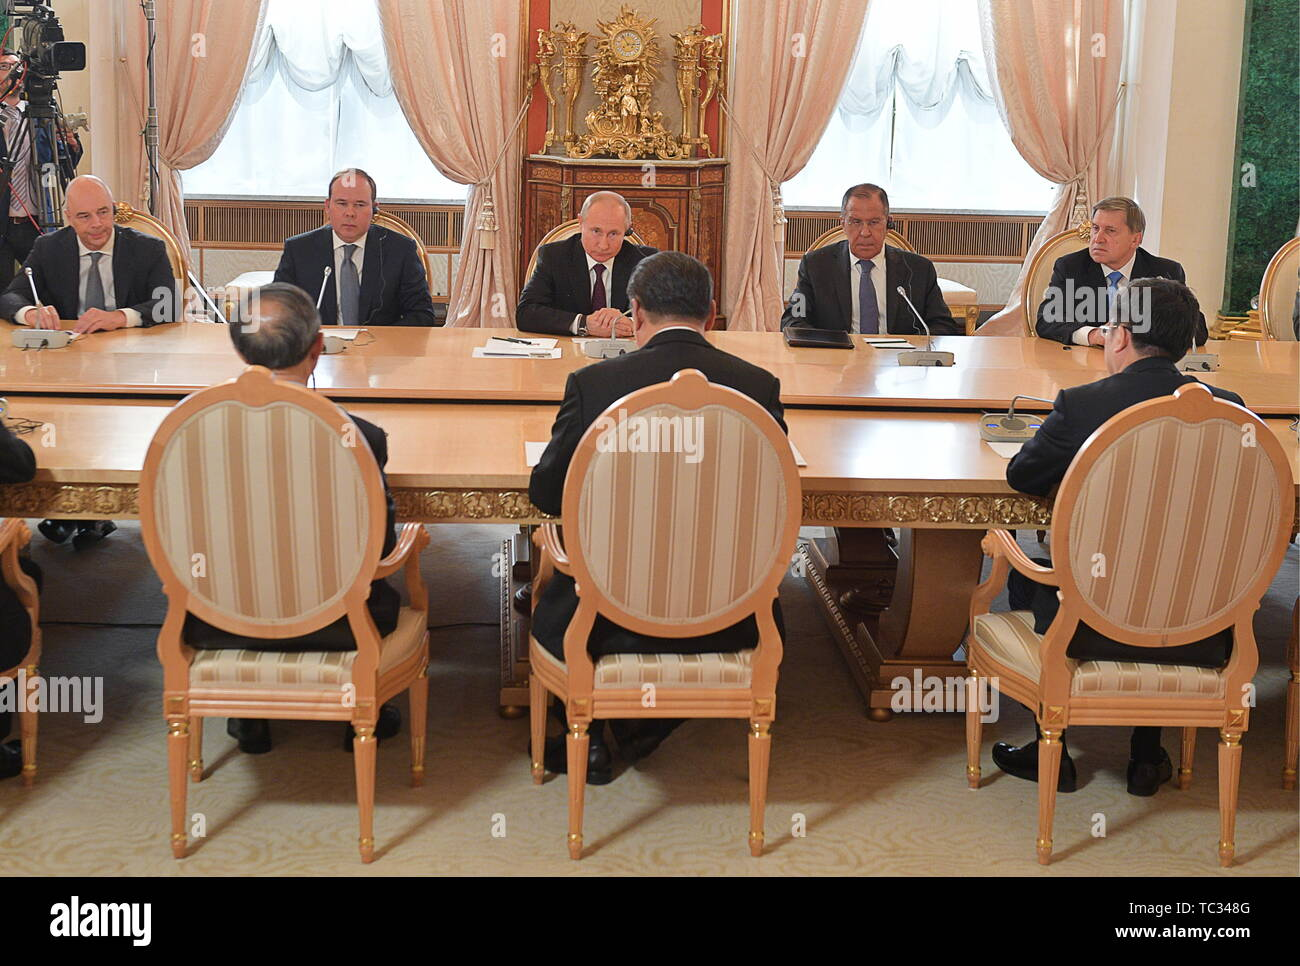 Moscow, Russia. 05th June, 2019. MOSCOW, RUSSIA - JUNE 5, 2019: Russia's Finance Minister Anton Siluanov, the Chief of Staff of the Presidential Executive Office Anton Vaino, Russia's President Vladimir Putin, Russia's Minister of Foreign Affairs Sergei Lavrov, and Adviser to the President of Russia Yuri Ushakov (L-R back), and China's President Xi Jinping (C front) at Russian-Chinese talks in the Moscow Kremlin; the Chinese leader is on a three-day state visit to Russia. Alexei Druzhinin/Russian Presidential Press and Information Office/TASS Credit: ITAR-TASS News Agency/Alamy Live News - Stock Image